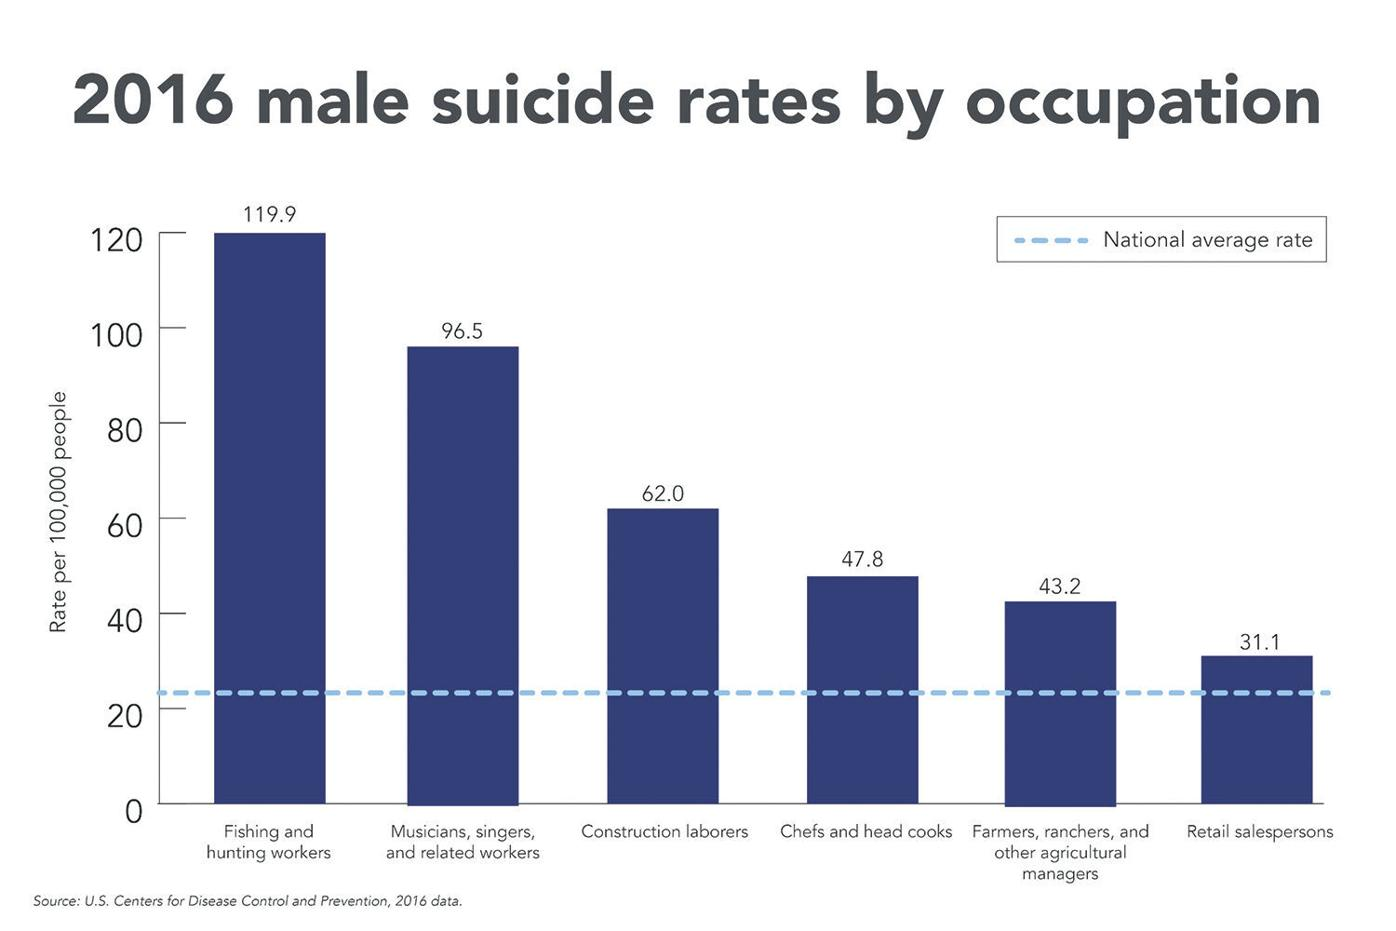 2016 male suicide rates by occupation